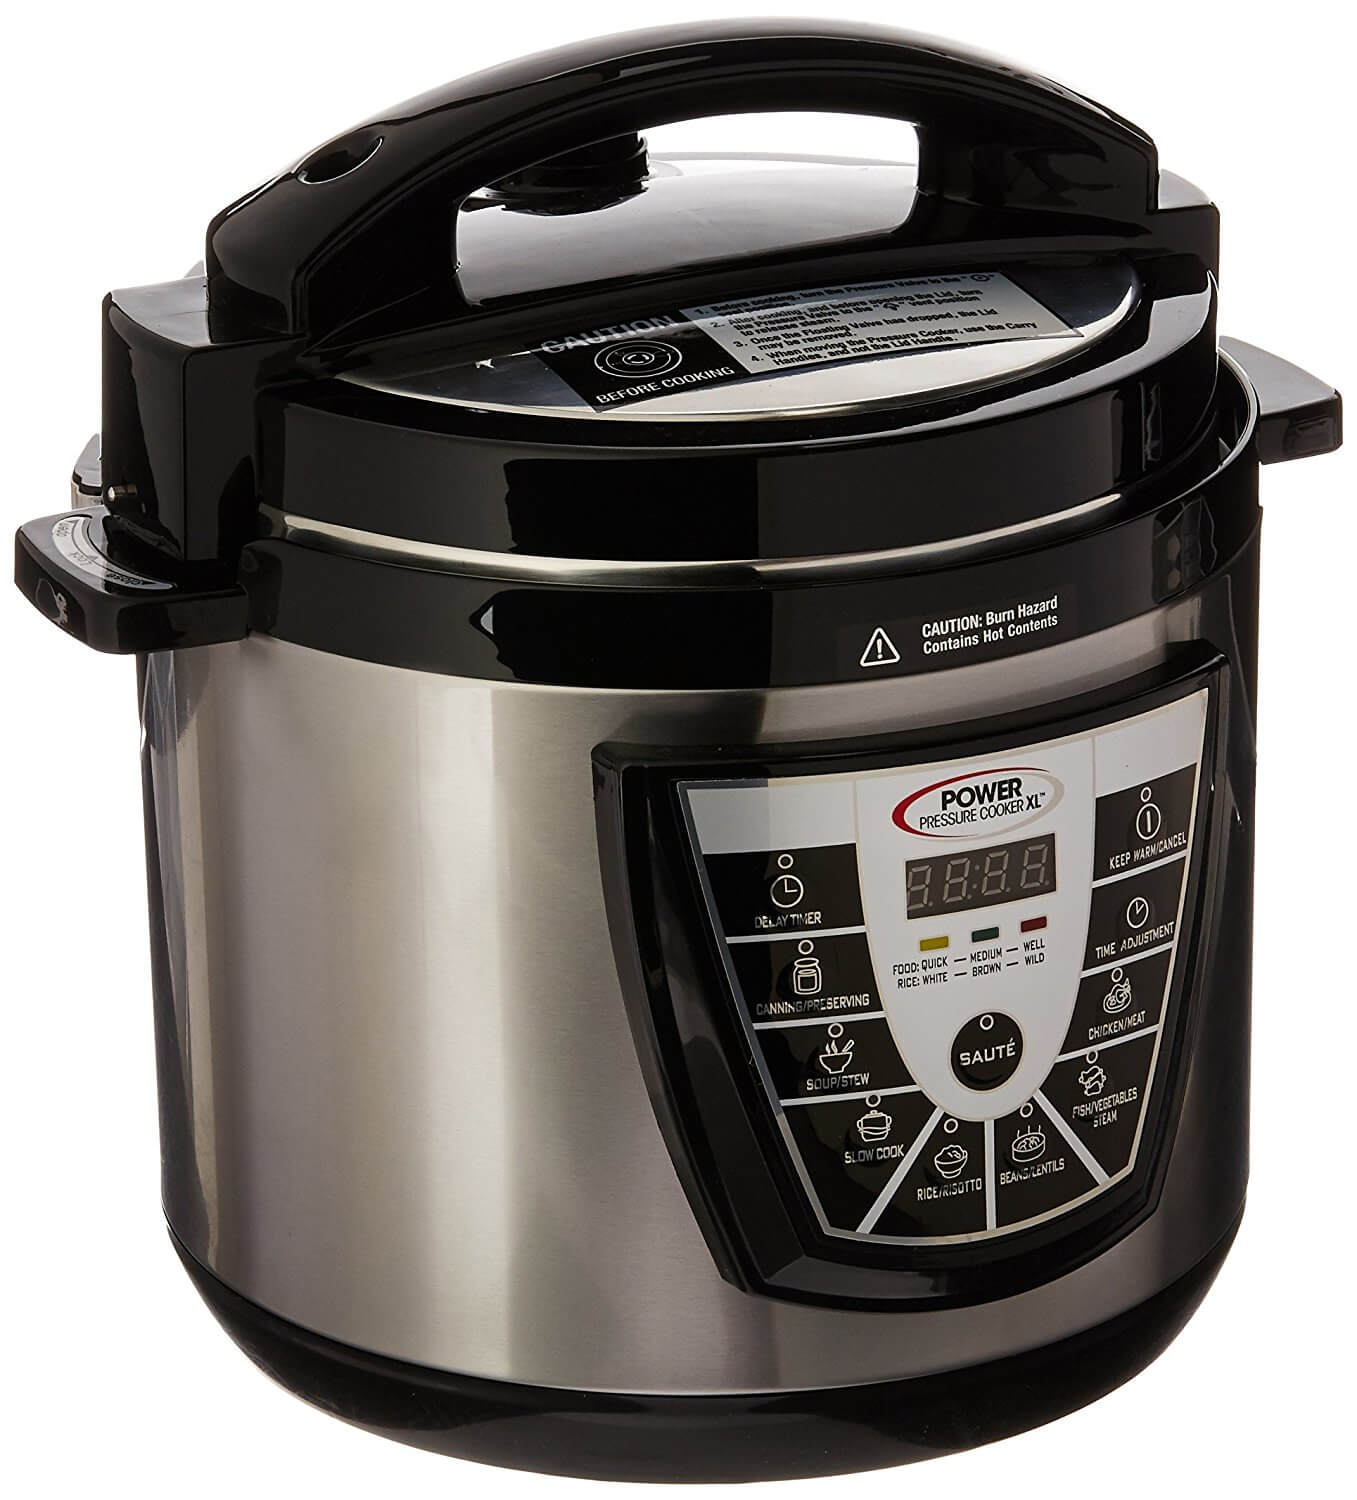 Electric Pressure Cooker On Tv ~ Power pressure cooker xl review tips